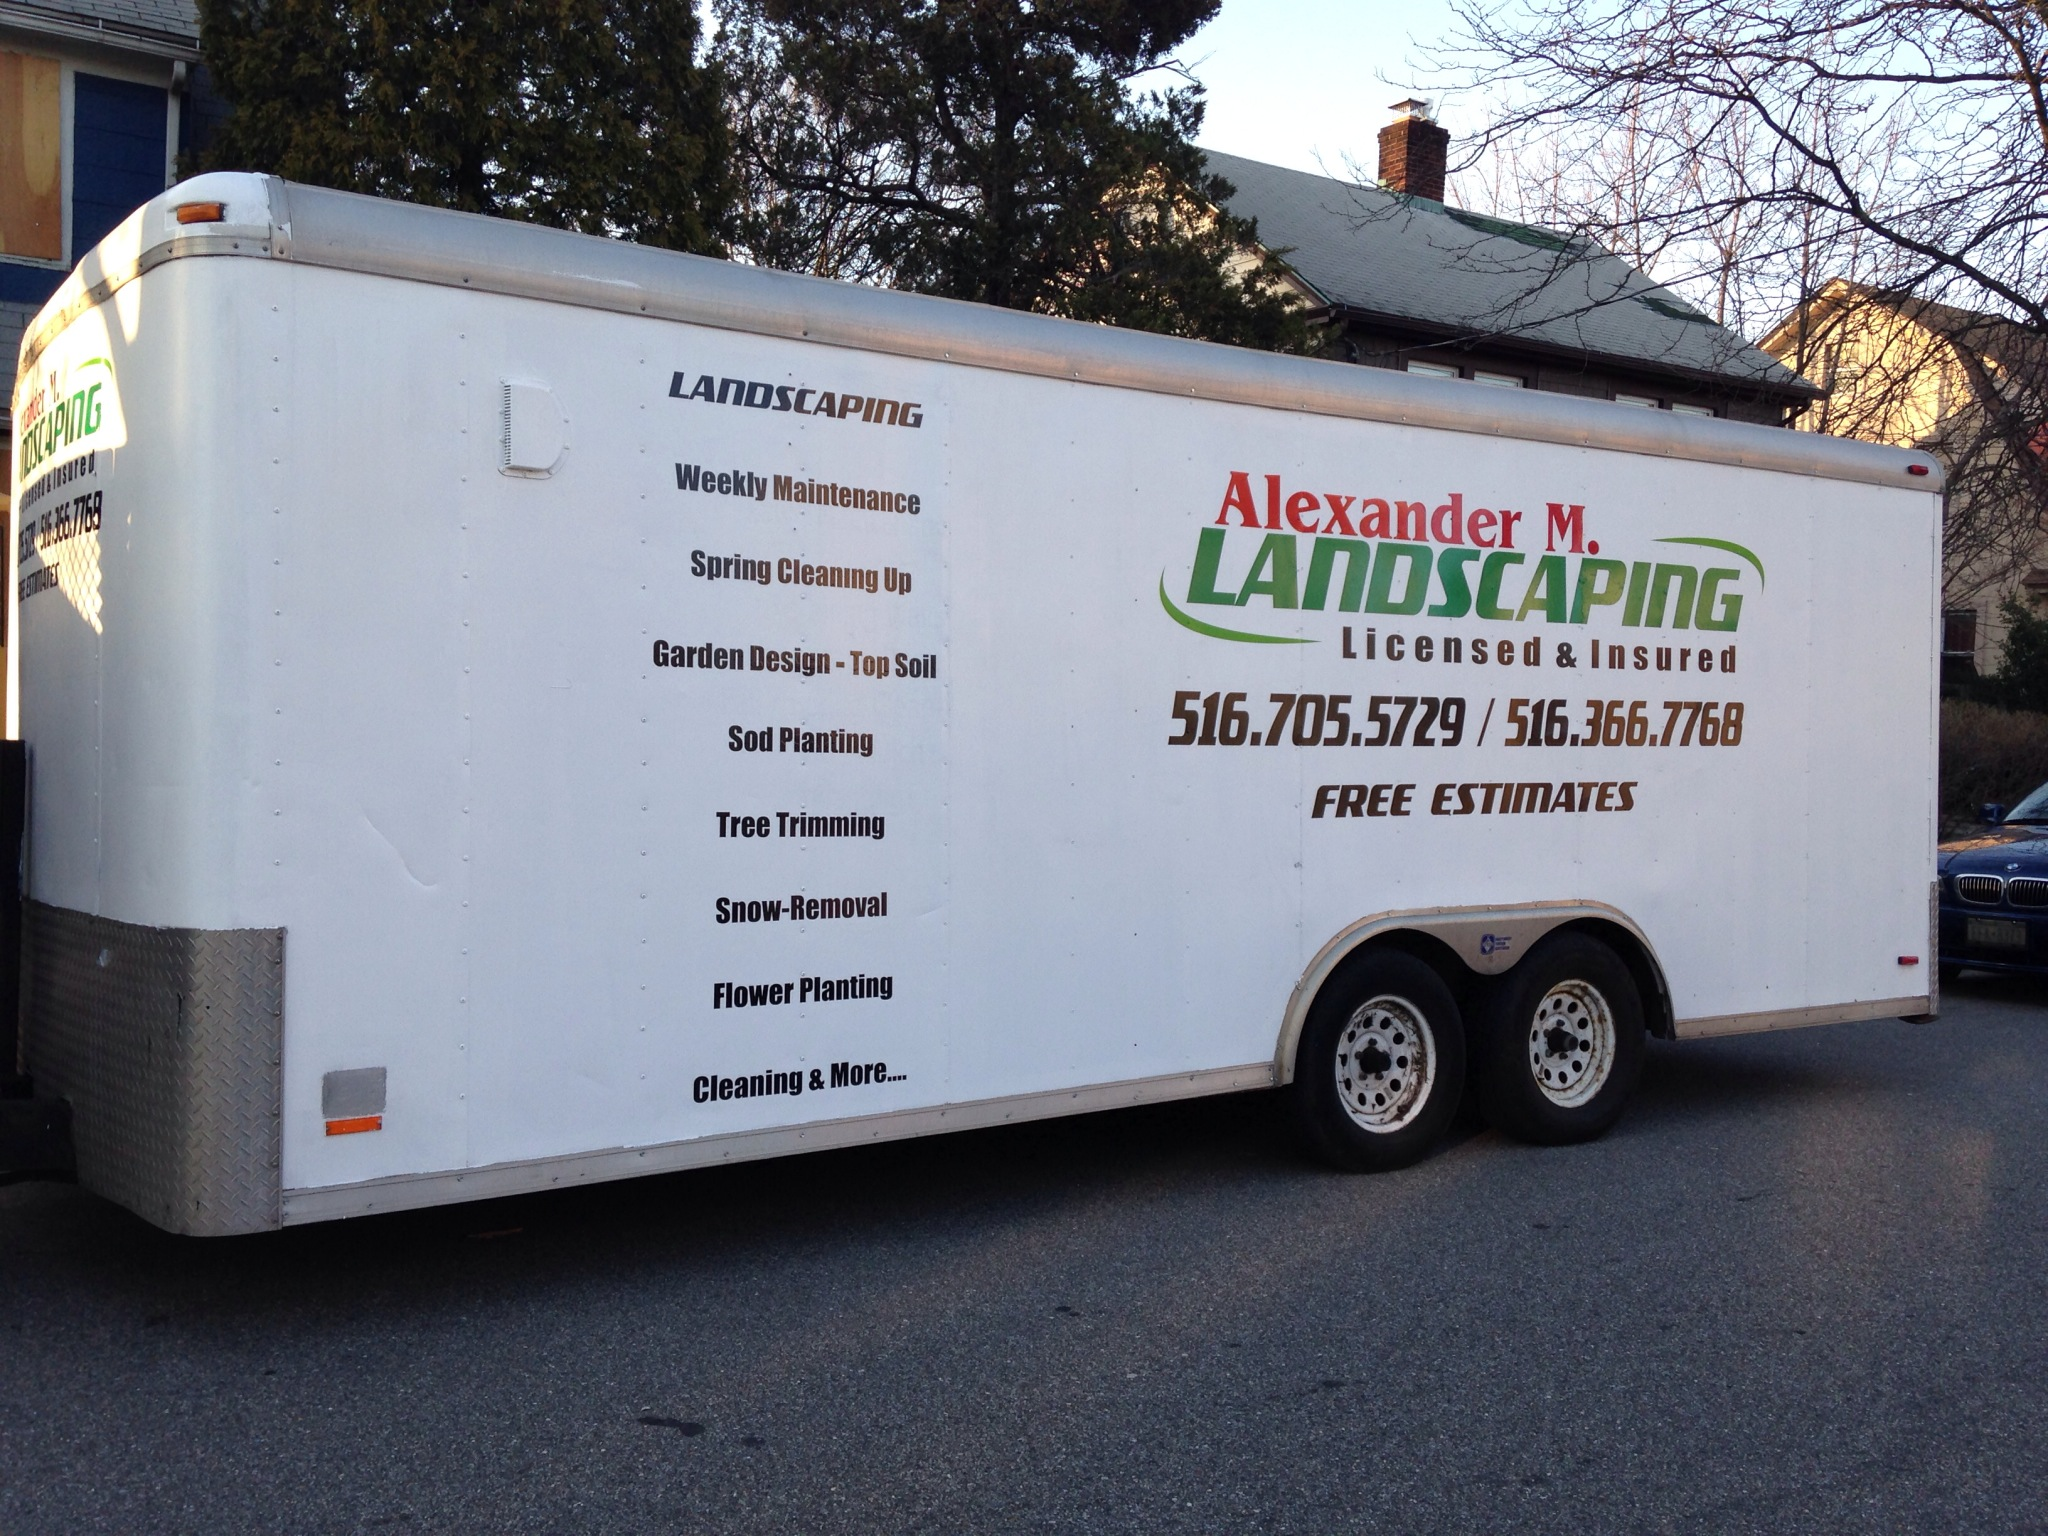 Alexander Landscaping trailer decal